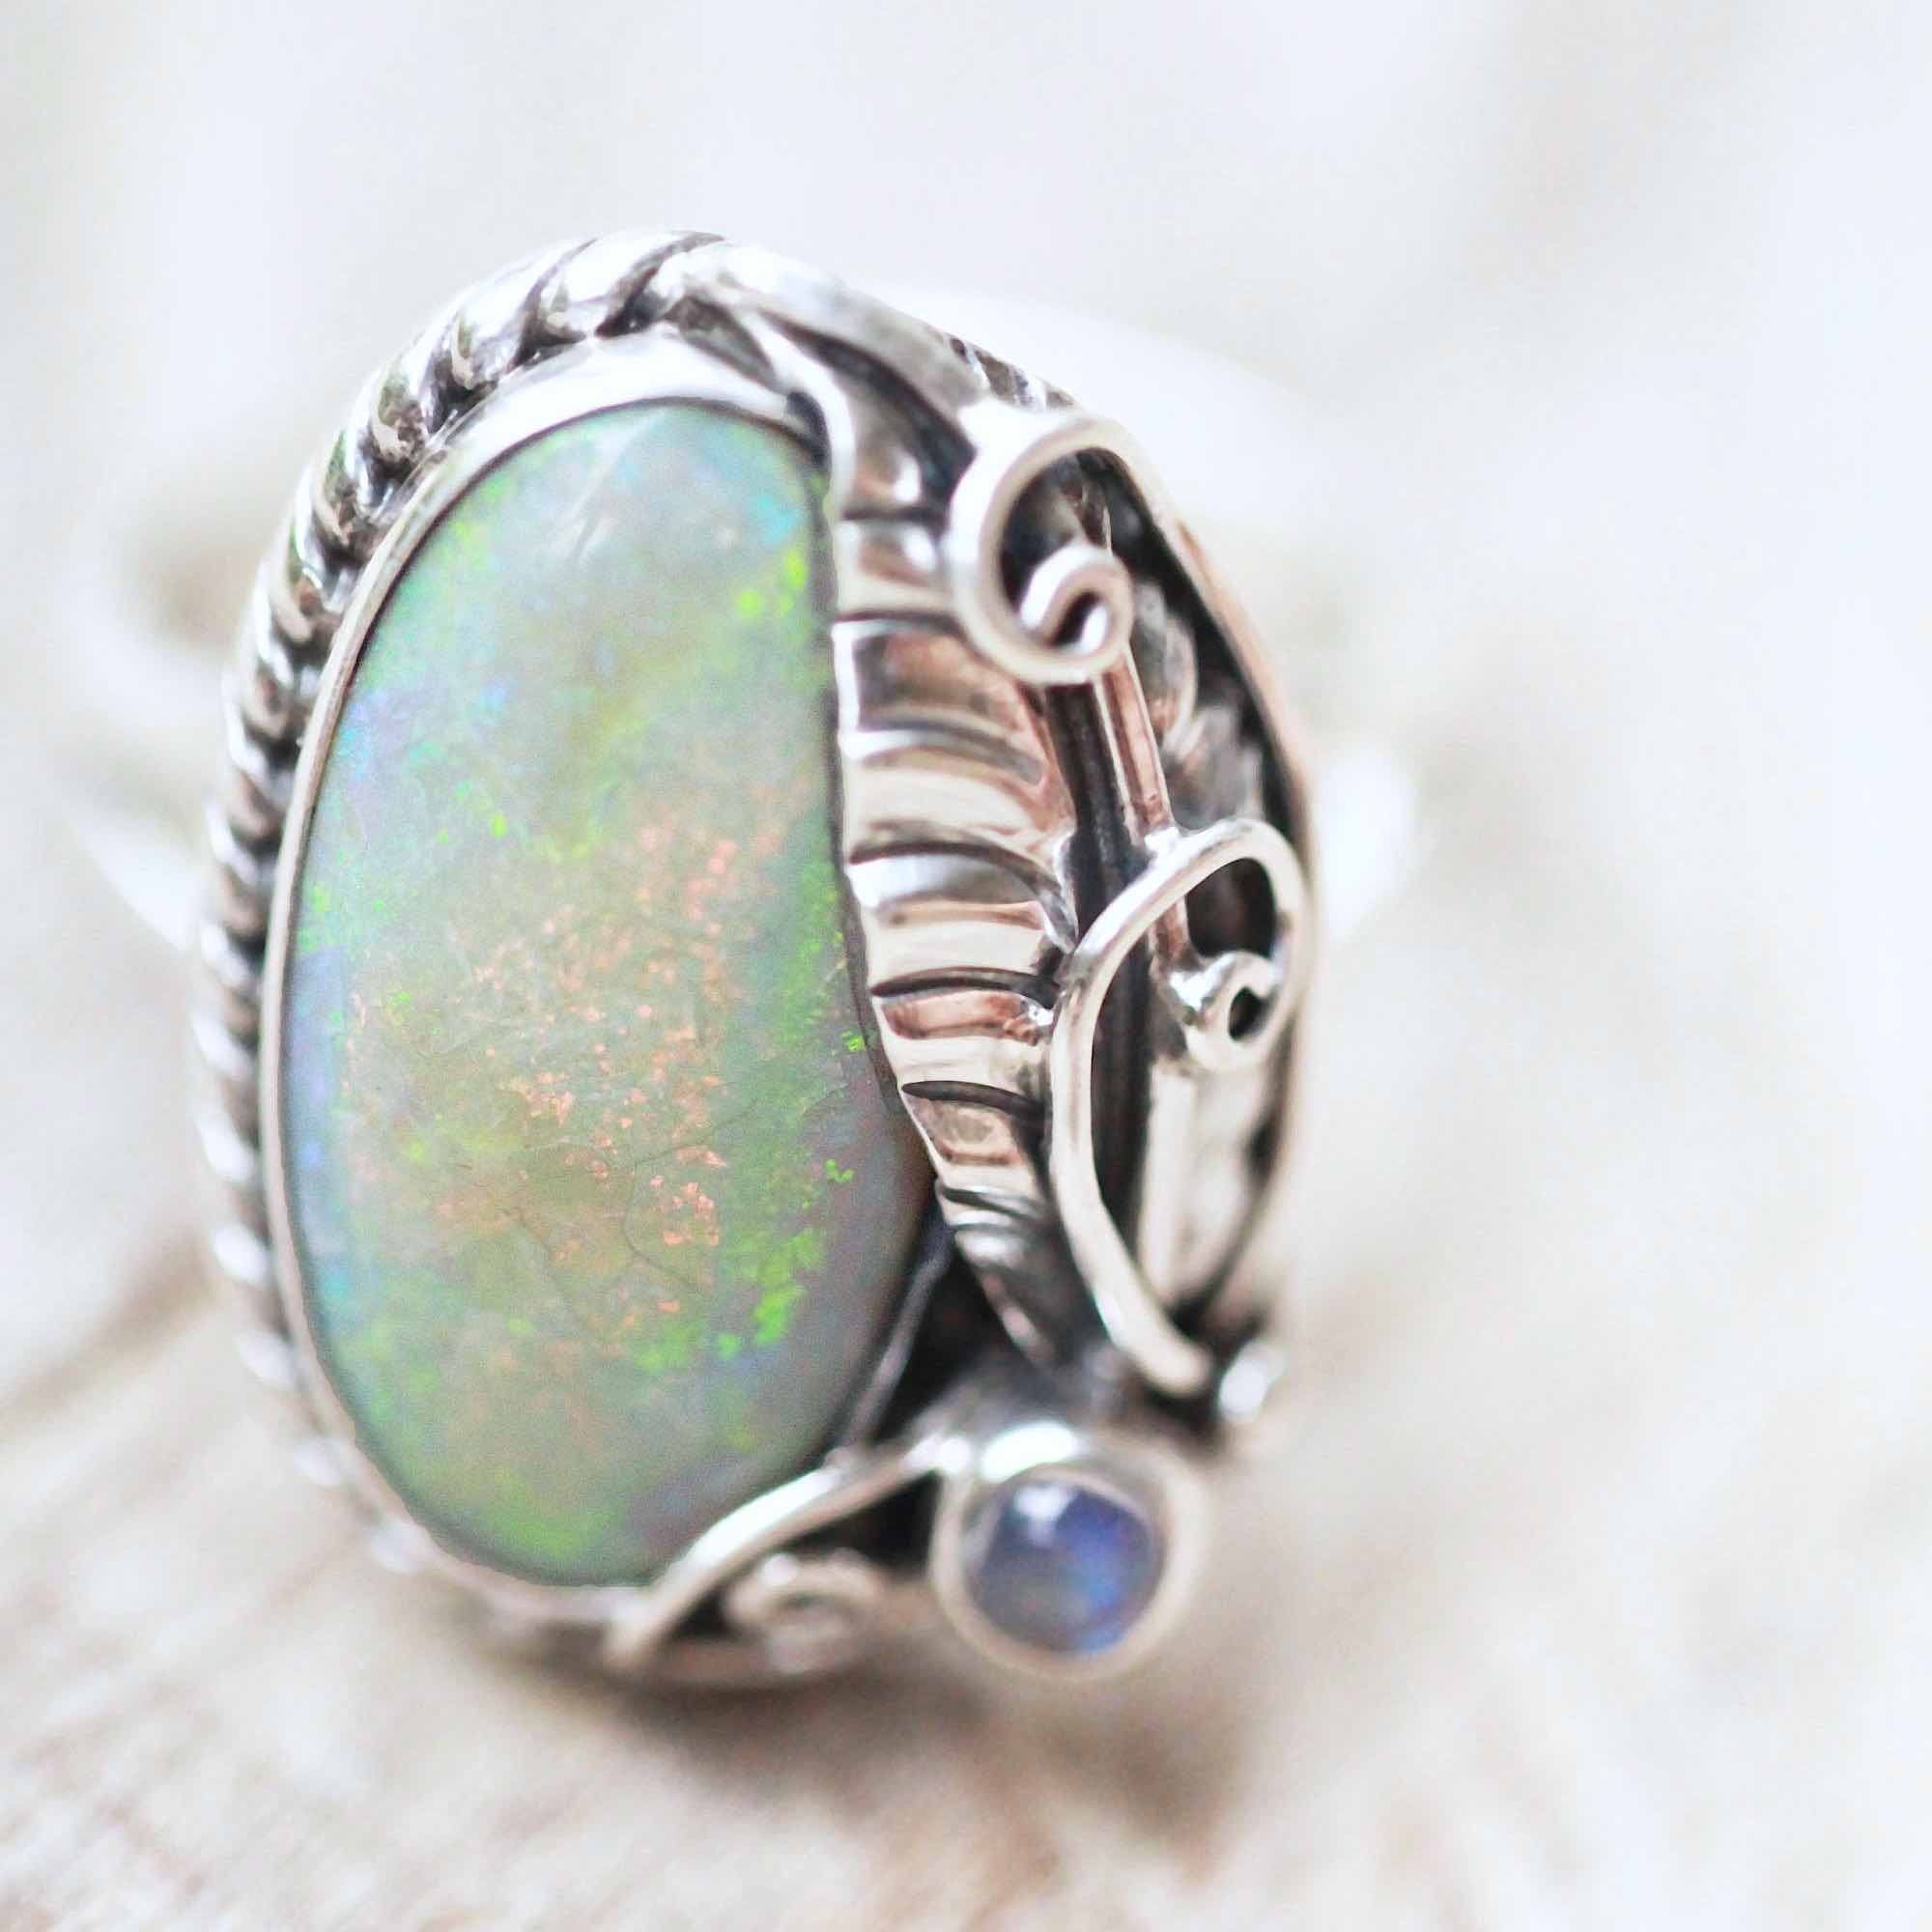 Statement White Opal Silver Ring